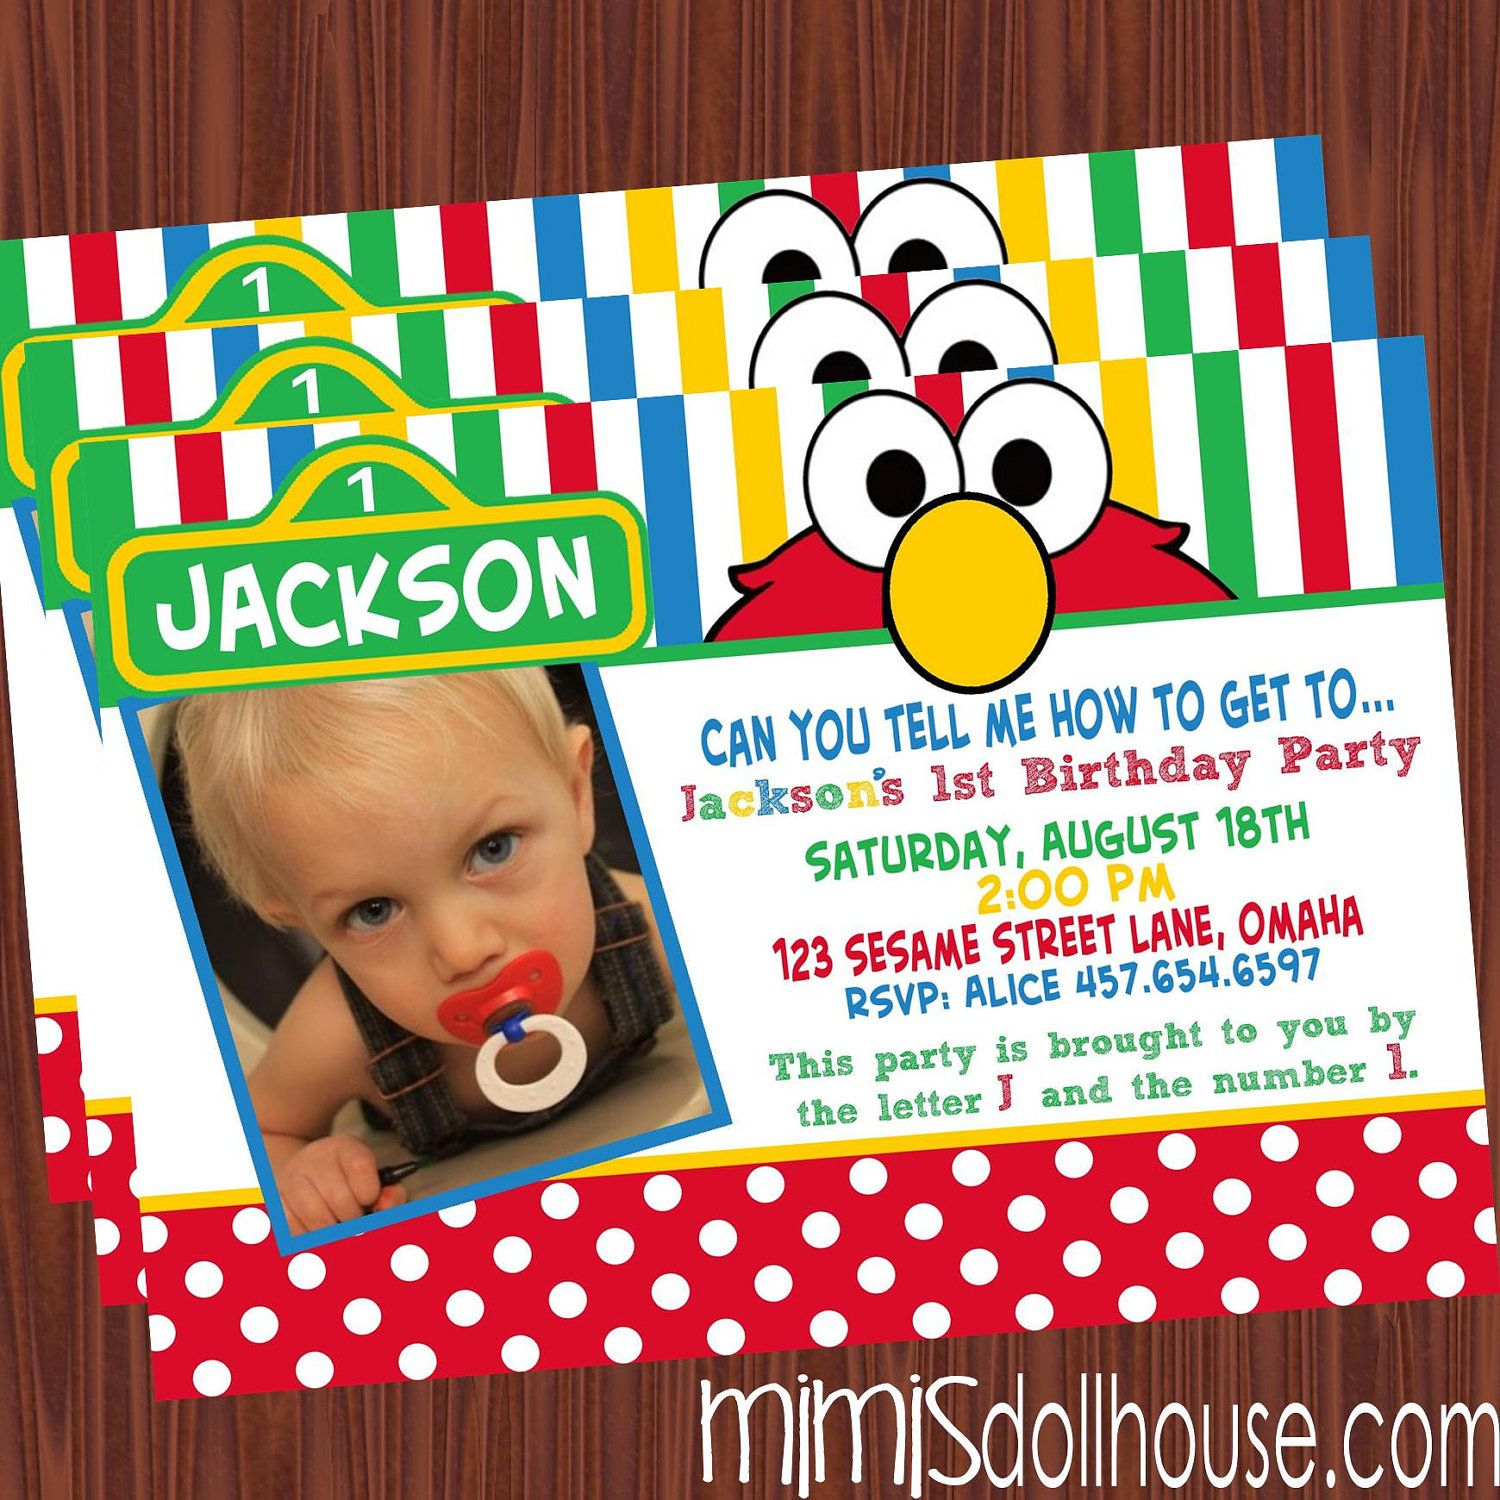 Sesame Street Invitations on Pinterest | Elmo Invitations, Sesame Street Signs and Sesame Street ...